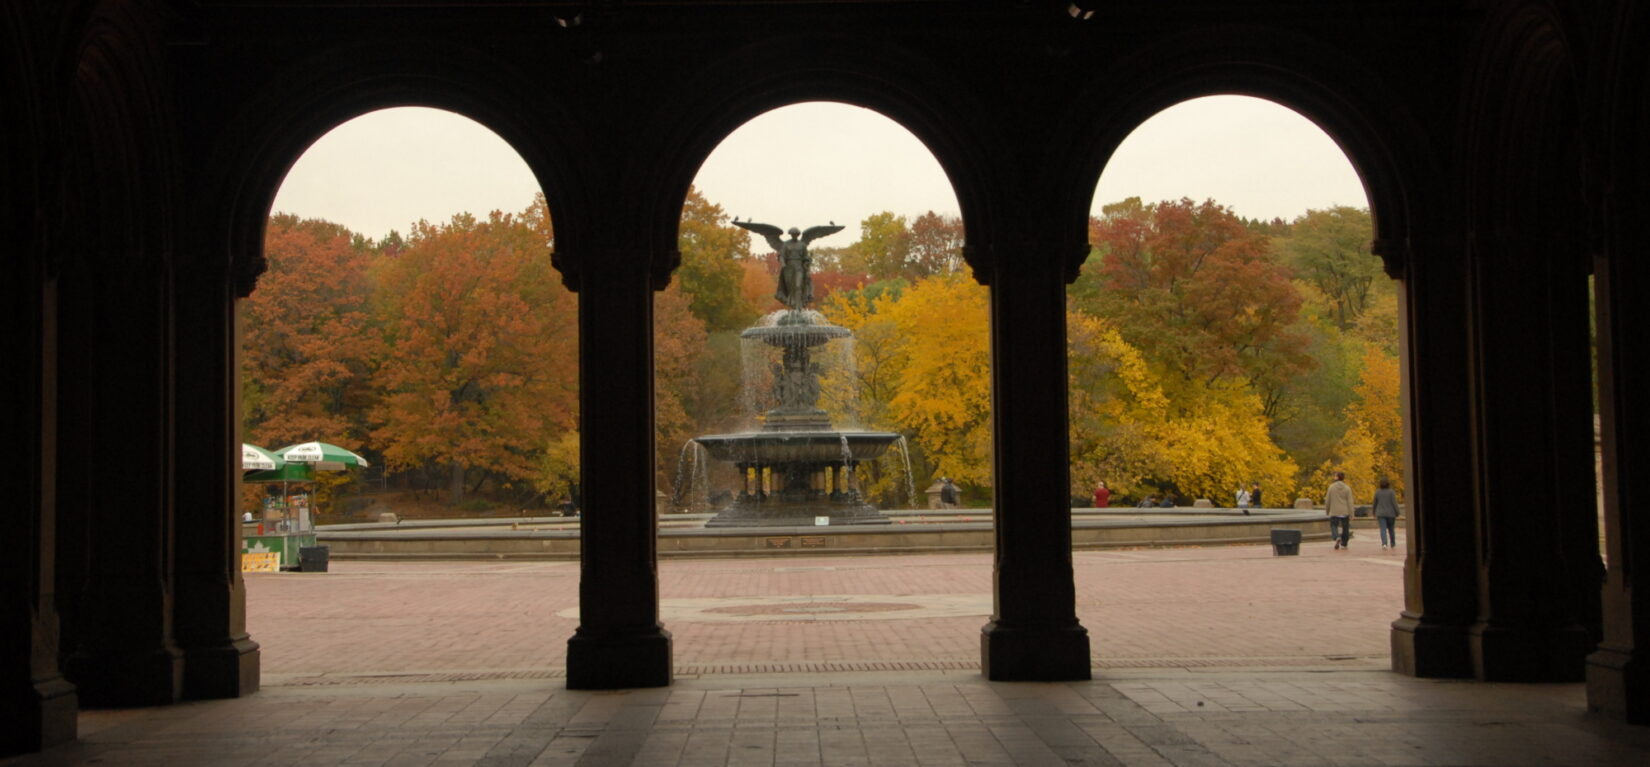 Looking through the shadowed arches of the Arcade to Bethesda Terrace